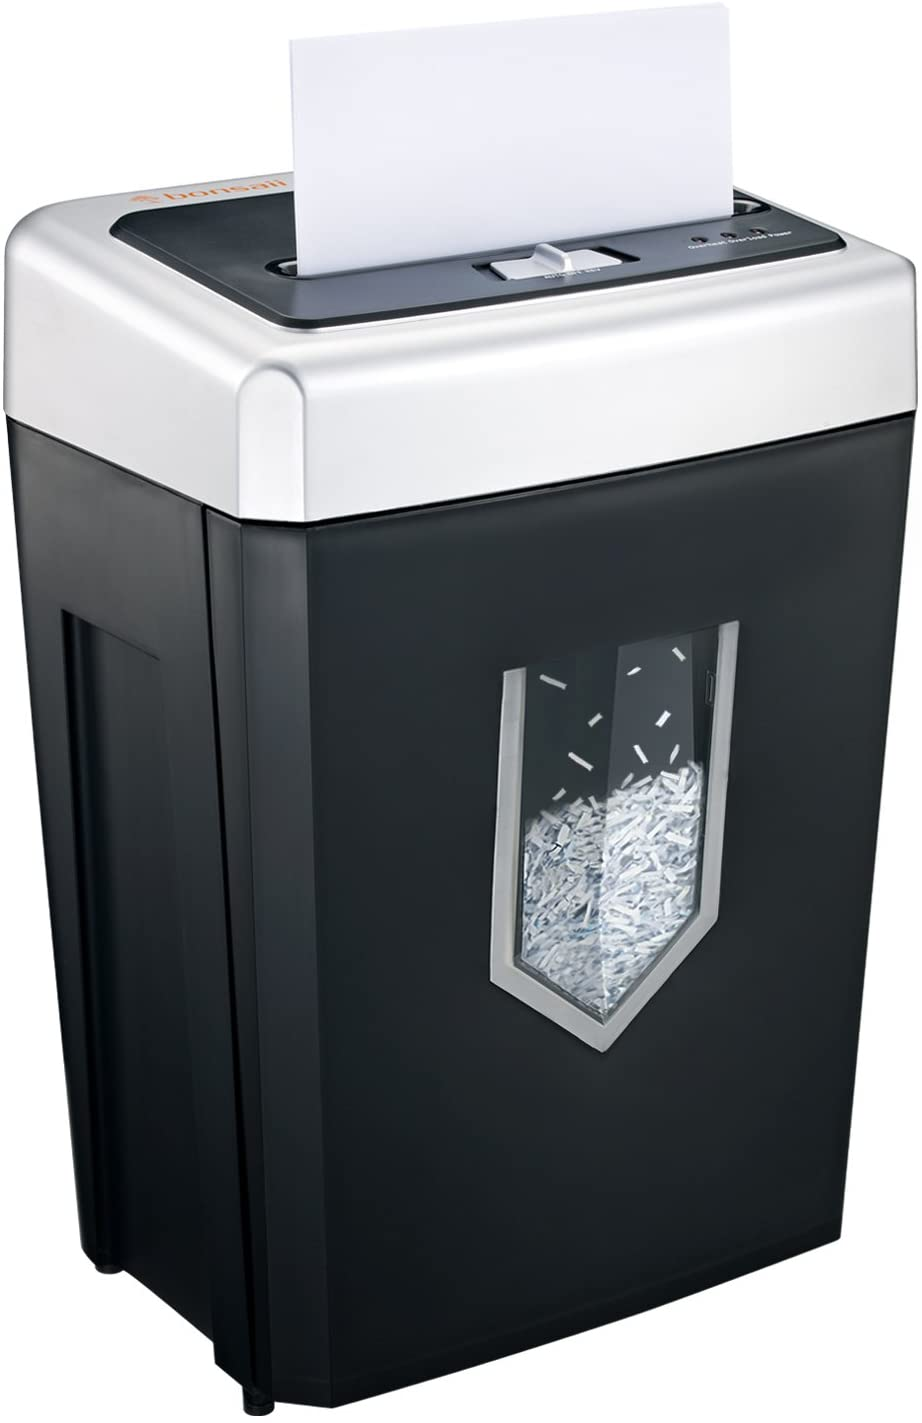 Bonsaii EverShred 14-Sheet Cross-Cut Paper Shredder, 30-Minute Heavy Duty Continuous Run Time, Equipped with Anti-Jam System, P-3 High-Security Level, uk reviews